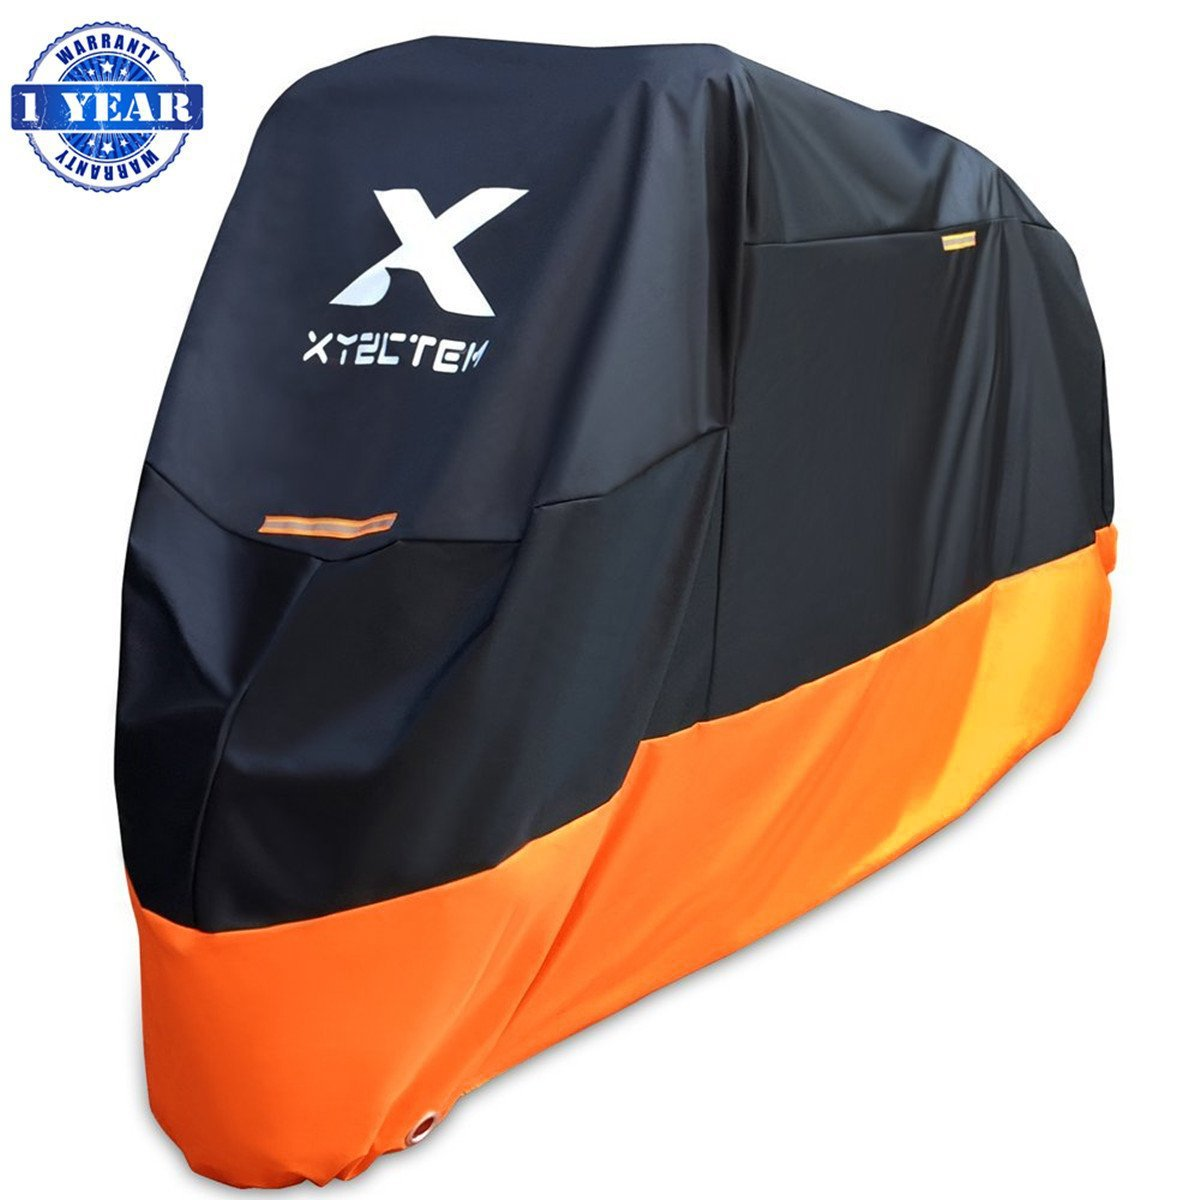 XYZCTEM Motorcycle Cover – All Season Waterproof Outdoor Protection – Precision Fit for 116 inch Tour Bikes, Choppers and Cruisers – Protect Against Dust, Debris, Rain and Weather(XXXL,Black& Orange)